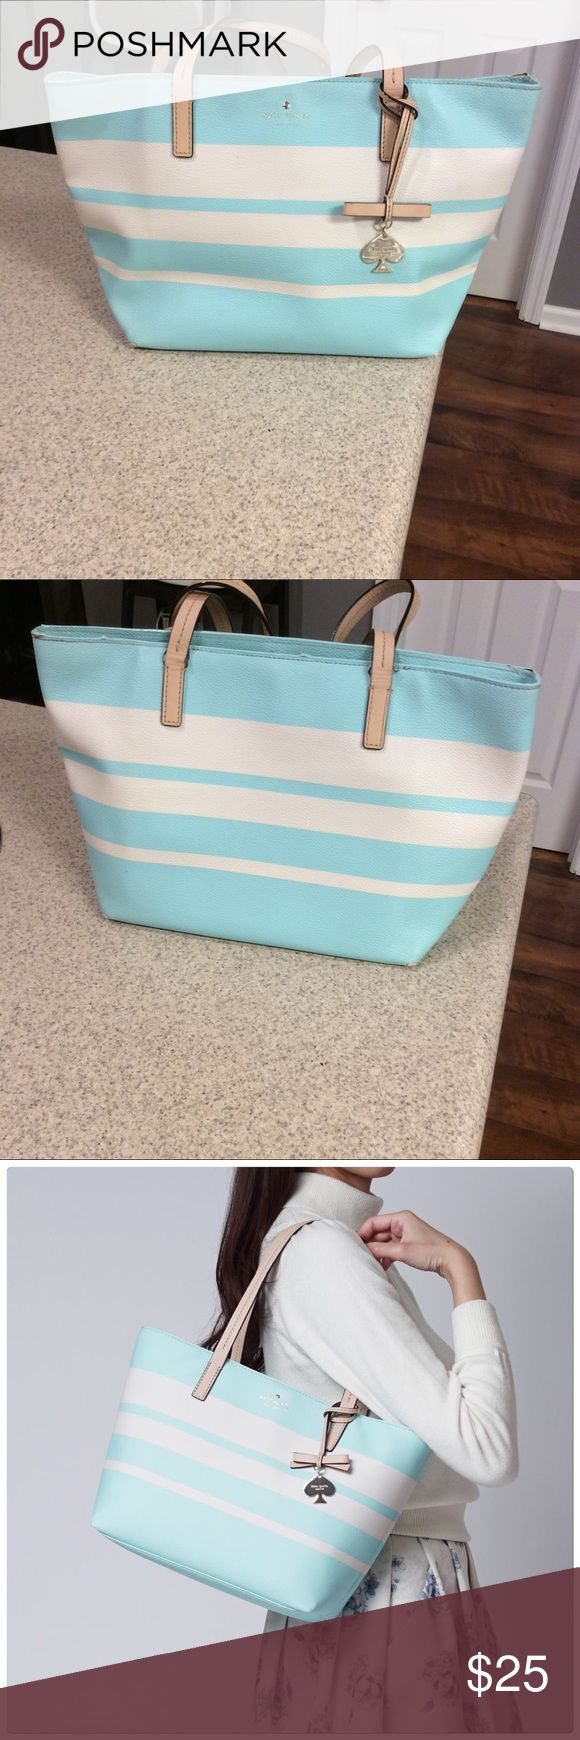 "Kate Spade New York Hawthorne Lane Small Ryan Tote Coated canvas tote! Color is grace blue/ cement. This bag has many flaws (price reflects). The inside needs cleaning and has stains. The handles are worn. The corners of the bag are worn. 14""x10""x5"". Authentic. No trades! No offers on comment section. kate spade Bags"